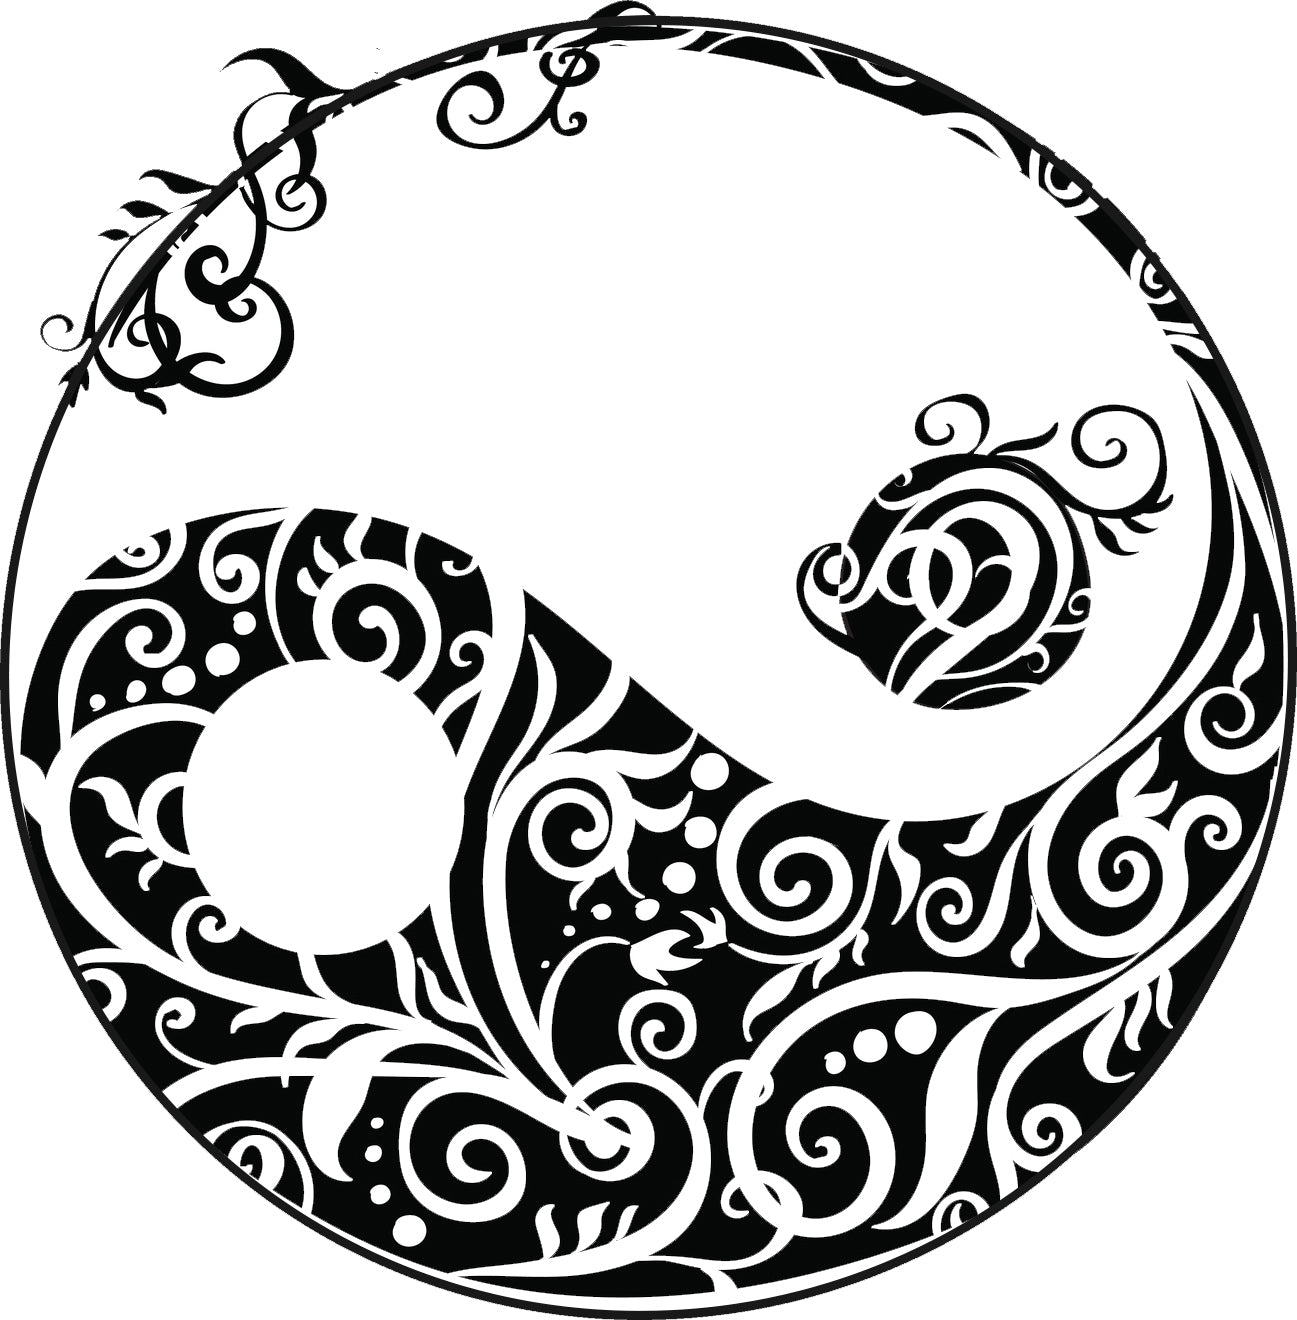 Pretty Beachy Vine Silhouette Art Cartoon Yin Yang Sign Icon Vinyl Decal Sticker